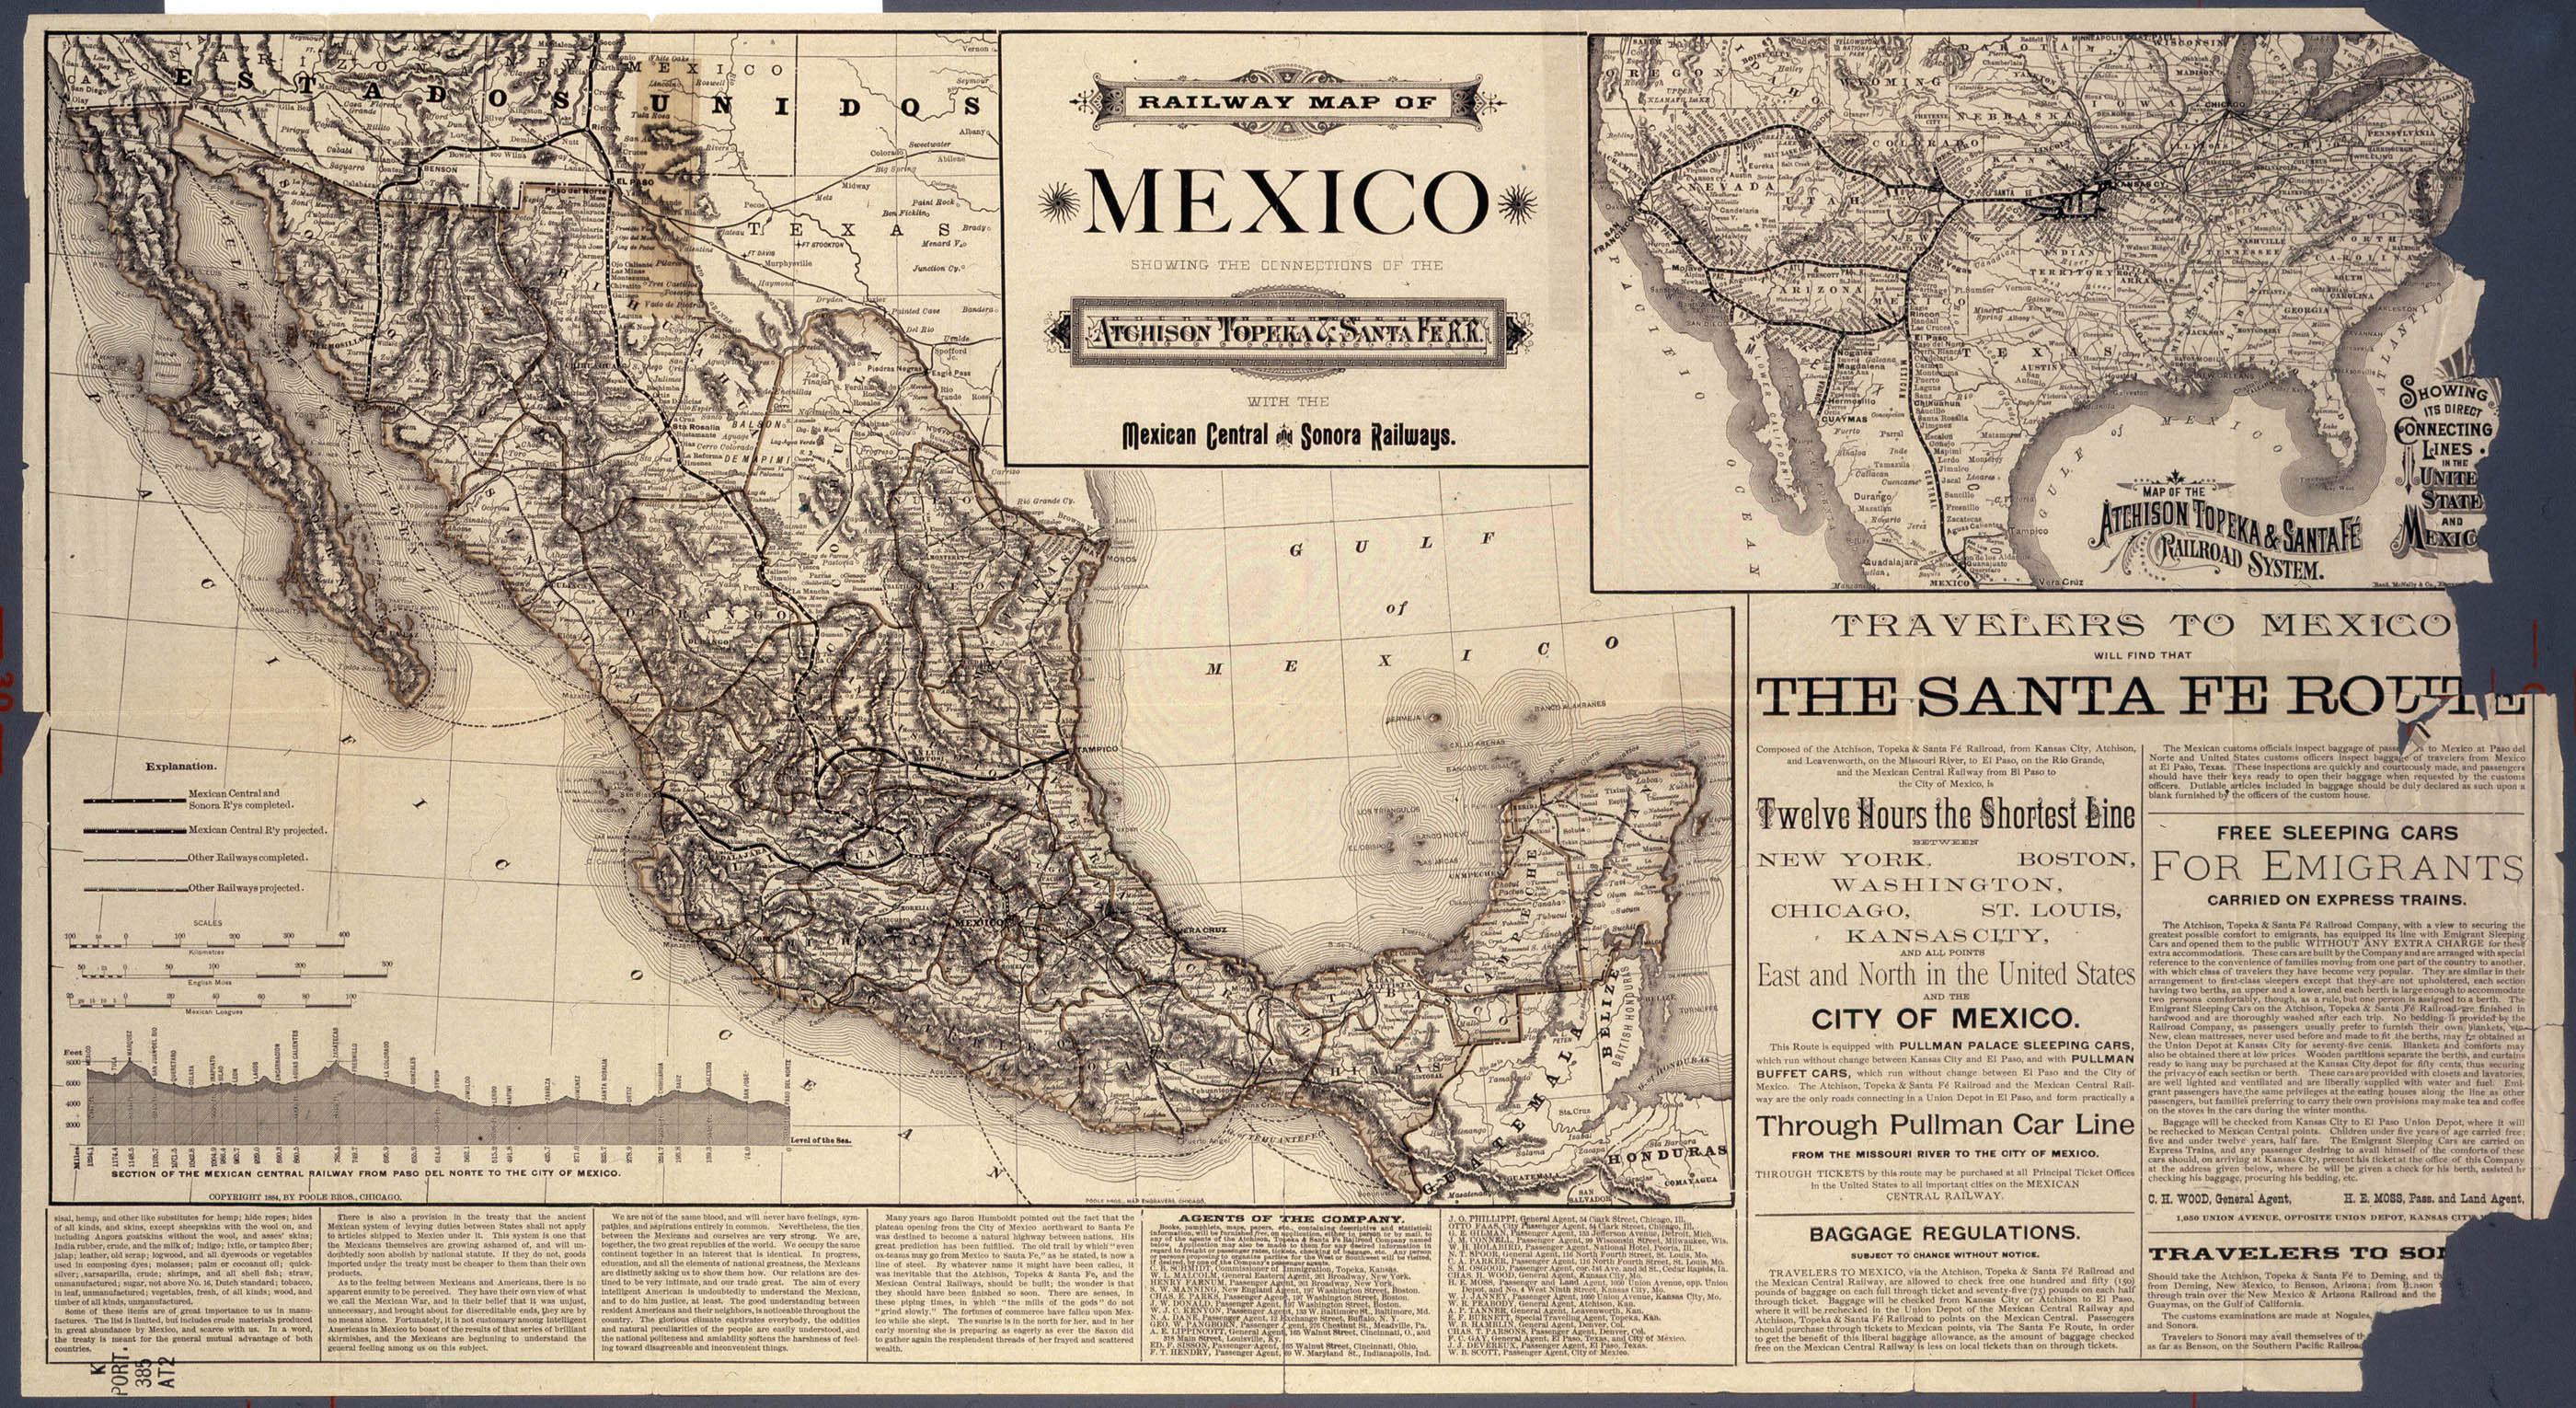 Railway map of Mexico showing connections of the Atchison, Topeka and Santa Fe R. R. with the Mexican Central and Sonora Railways